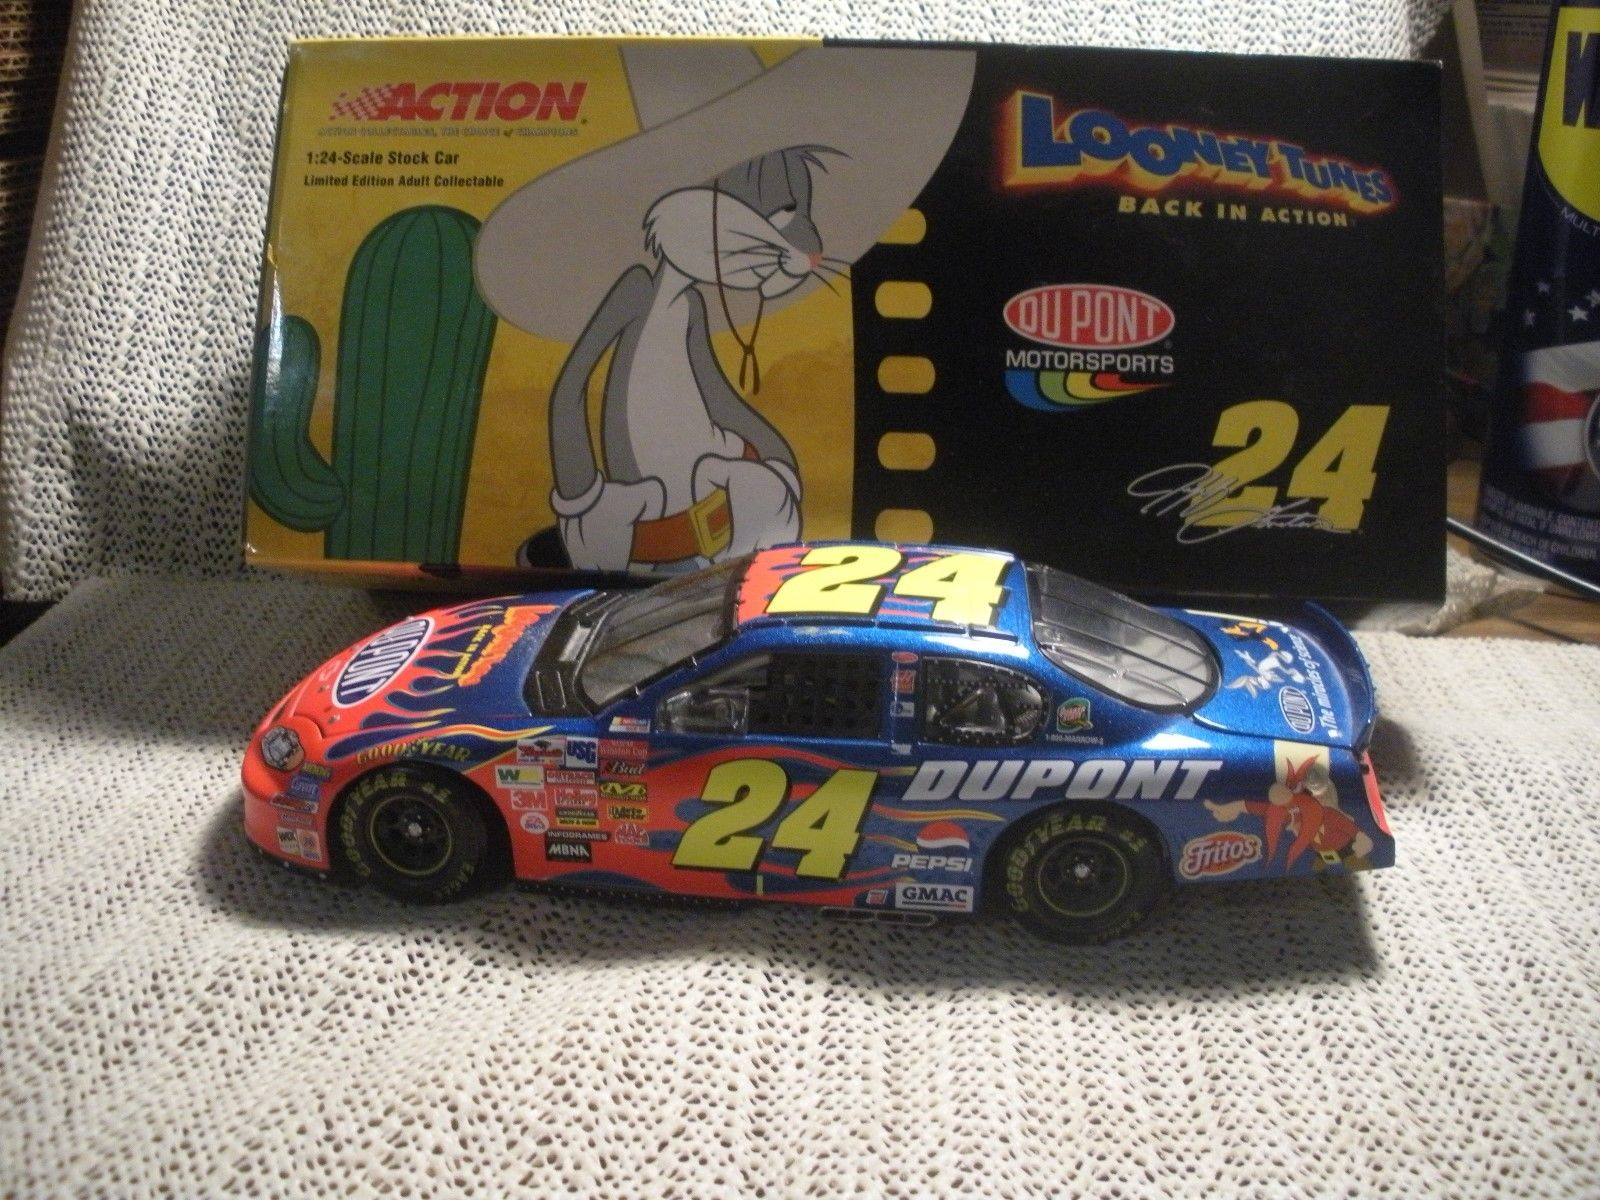 Nascar & Jeff Gordon's tribute - Page 6 9556592003LOONEYTUNES